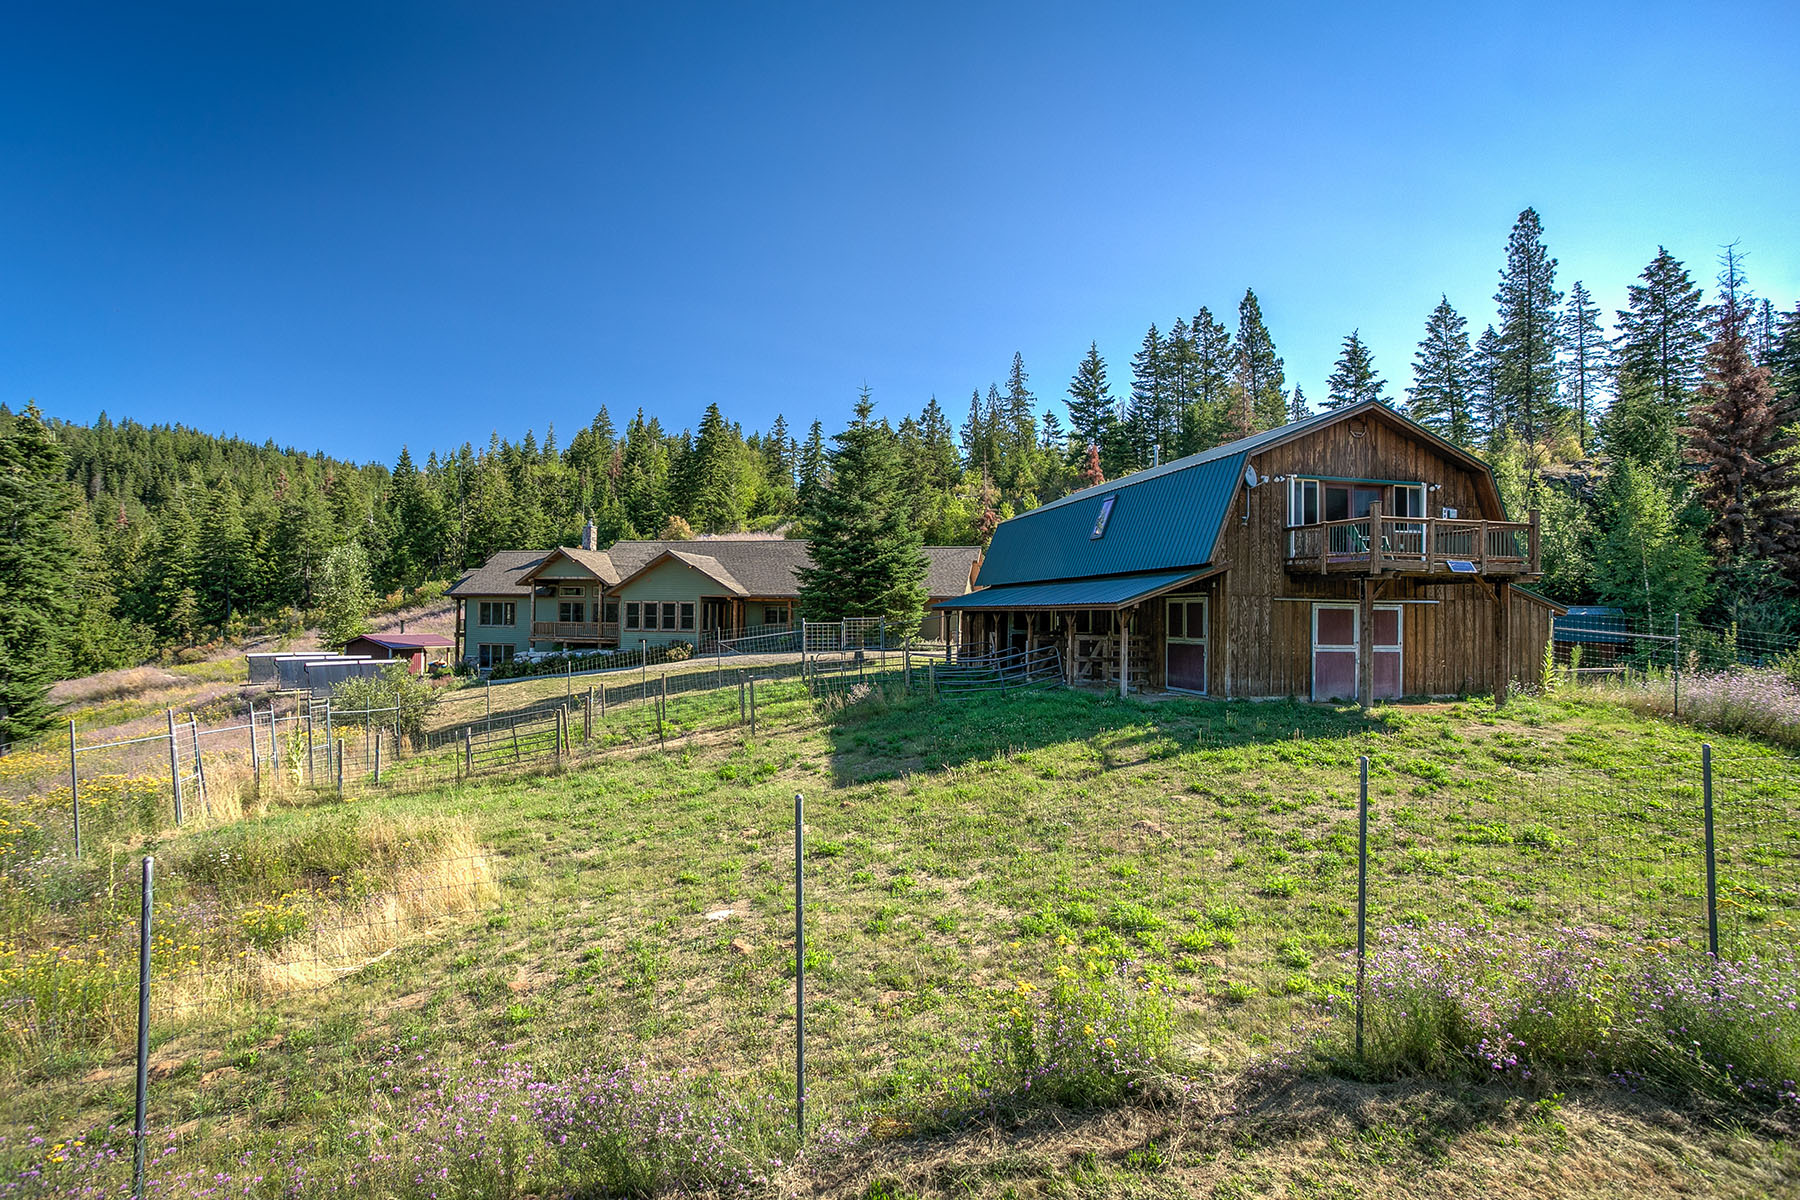 Villa per Vendita alle ore 2 Homes, 3 Cabins & 1 Barn on 320 Acres 0 Trout Creek Ranch Rd Sandpoint, Idaho, 83864 Stati Uniti